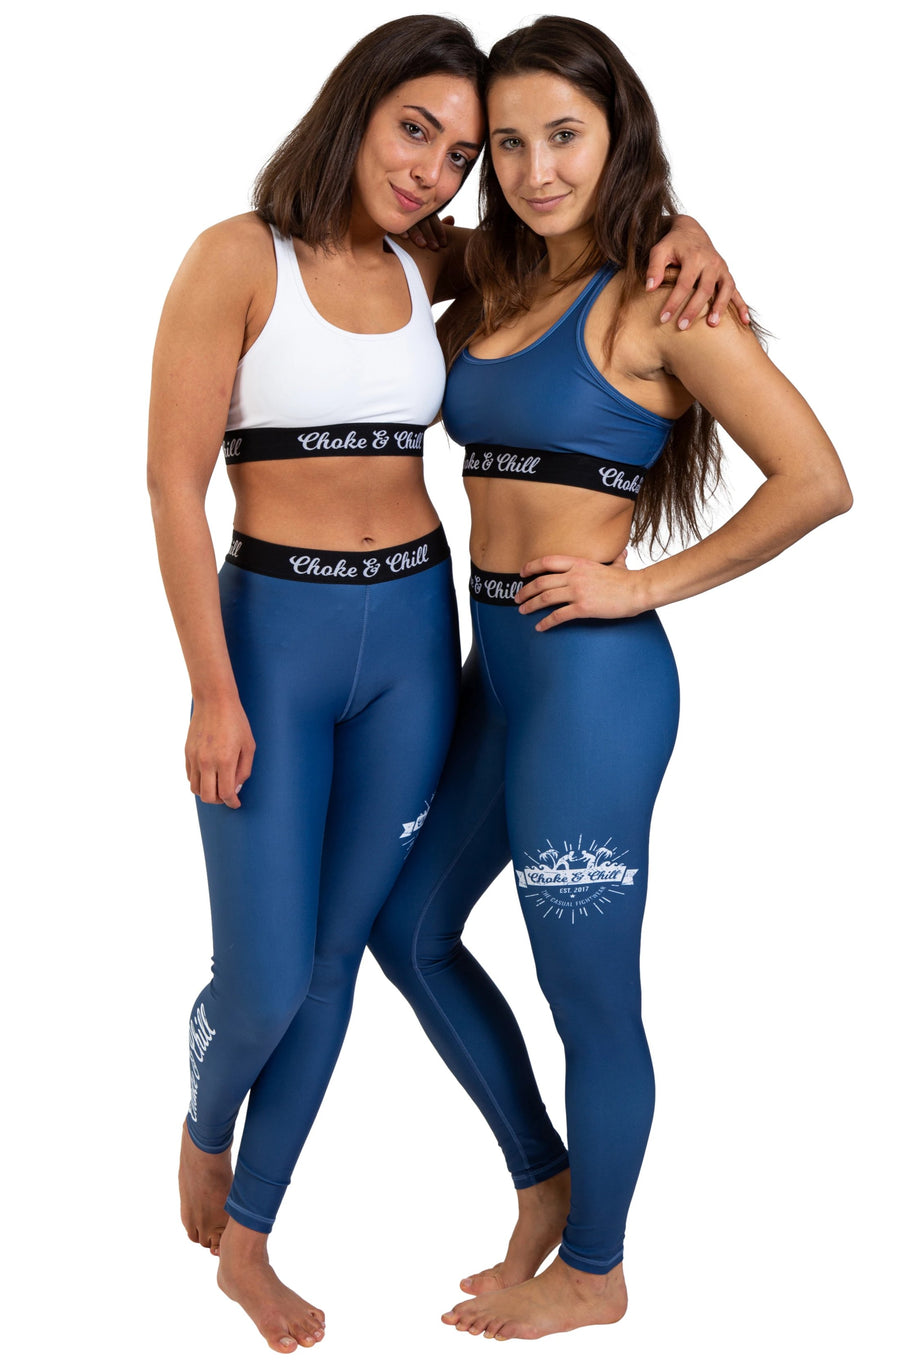 choke&chill Sports bra blue white matching spats leggins fightwear training athlete fighter Streetwear BJJ No-Gi Grappling Brazilian Jiu Jitsu MMA Kampfsport Martial Arts